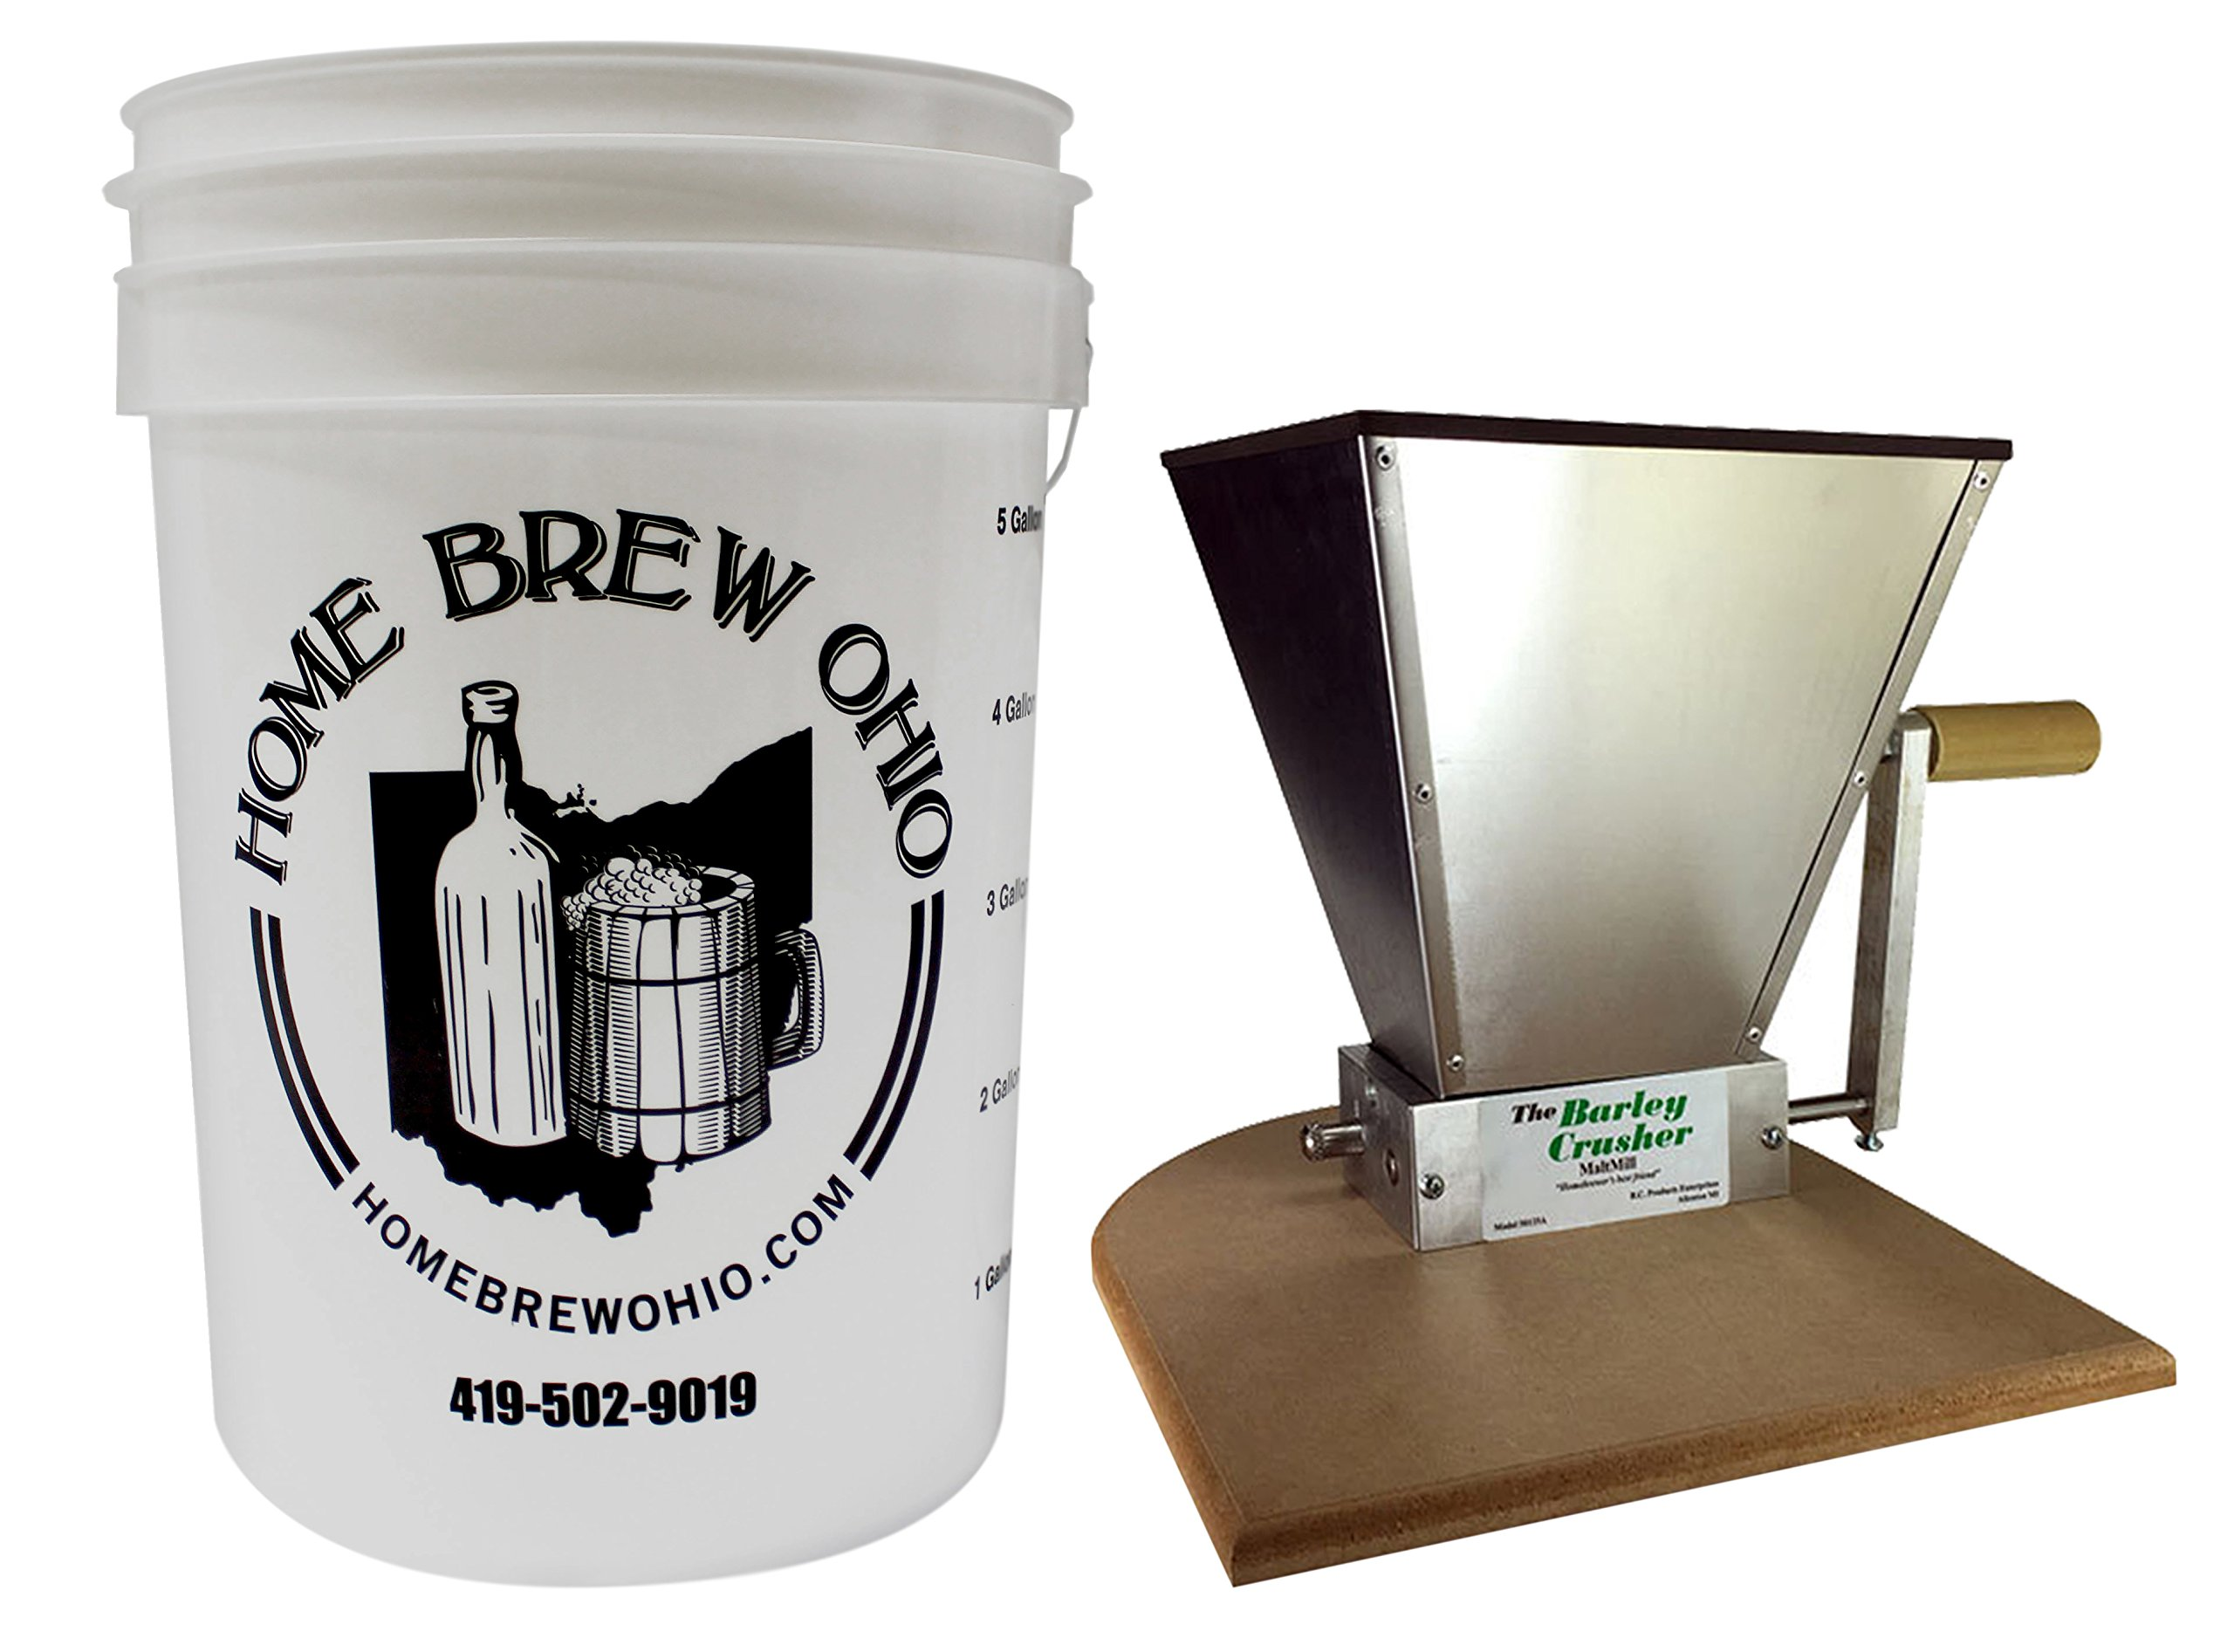 Home Brew Ohio Barley Crusher 7 lb. Hopper Including Bucket by Home Brew Ohio (Image #1)